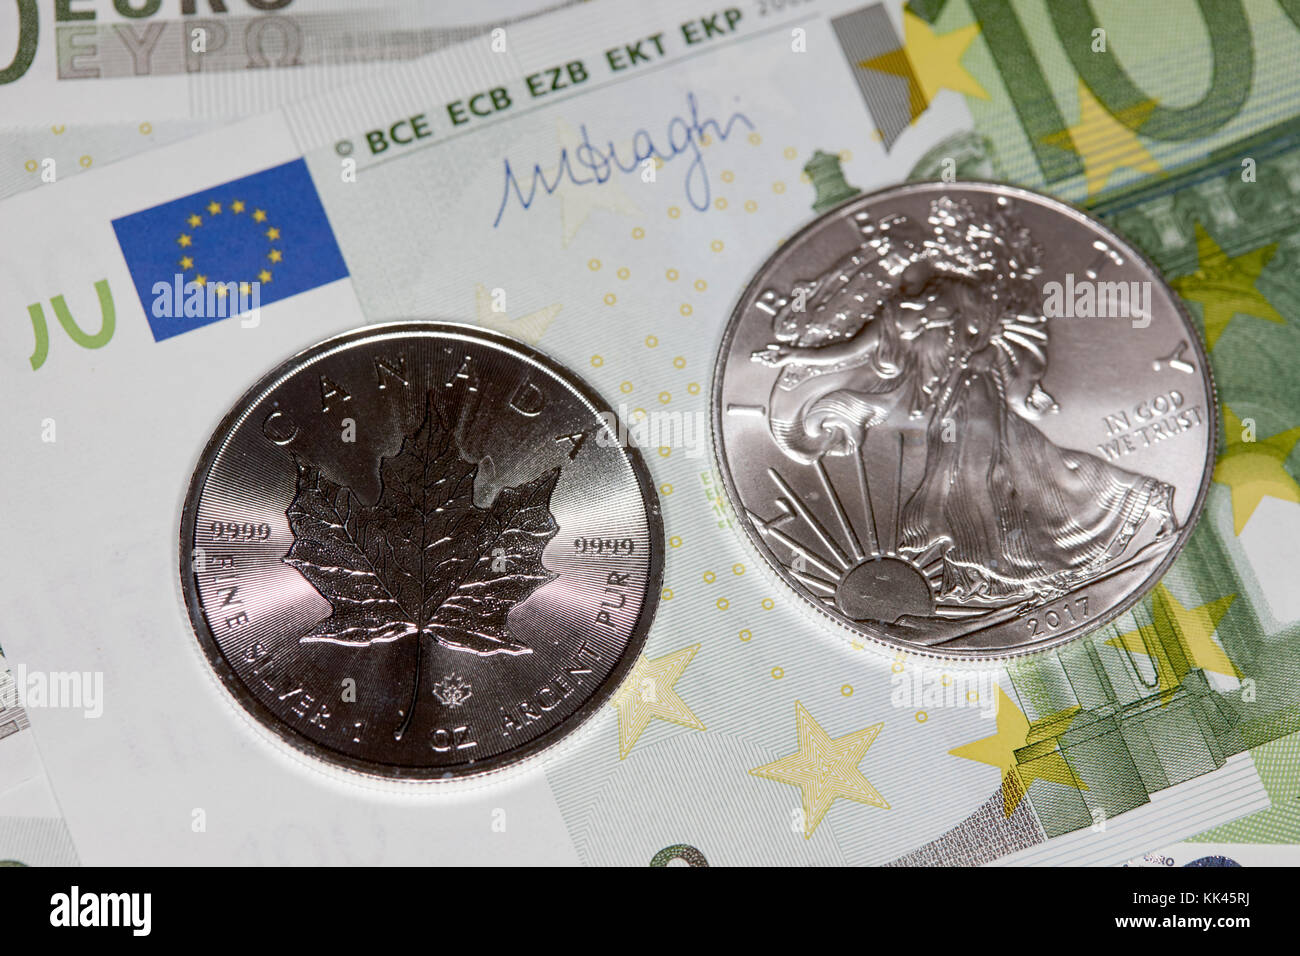 1oz silver bullion coins with euro banknotes - Stock Image